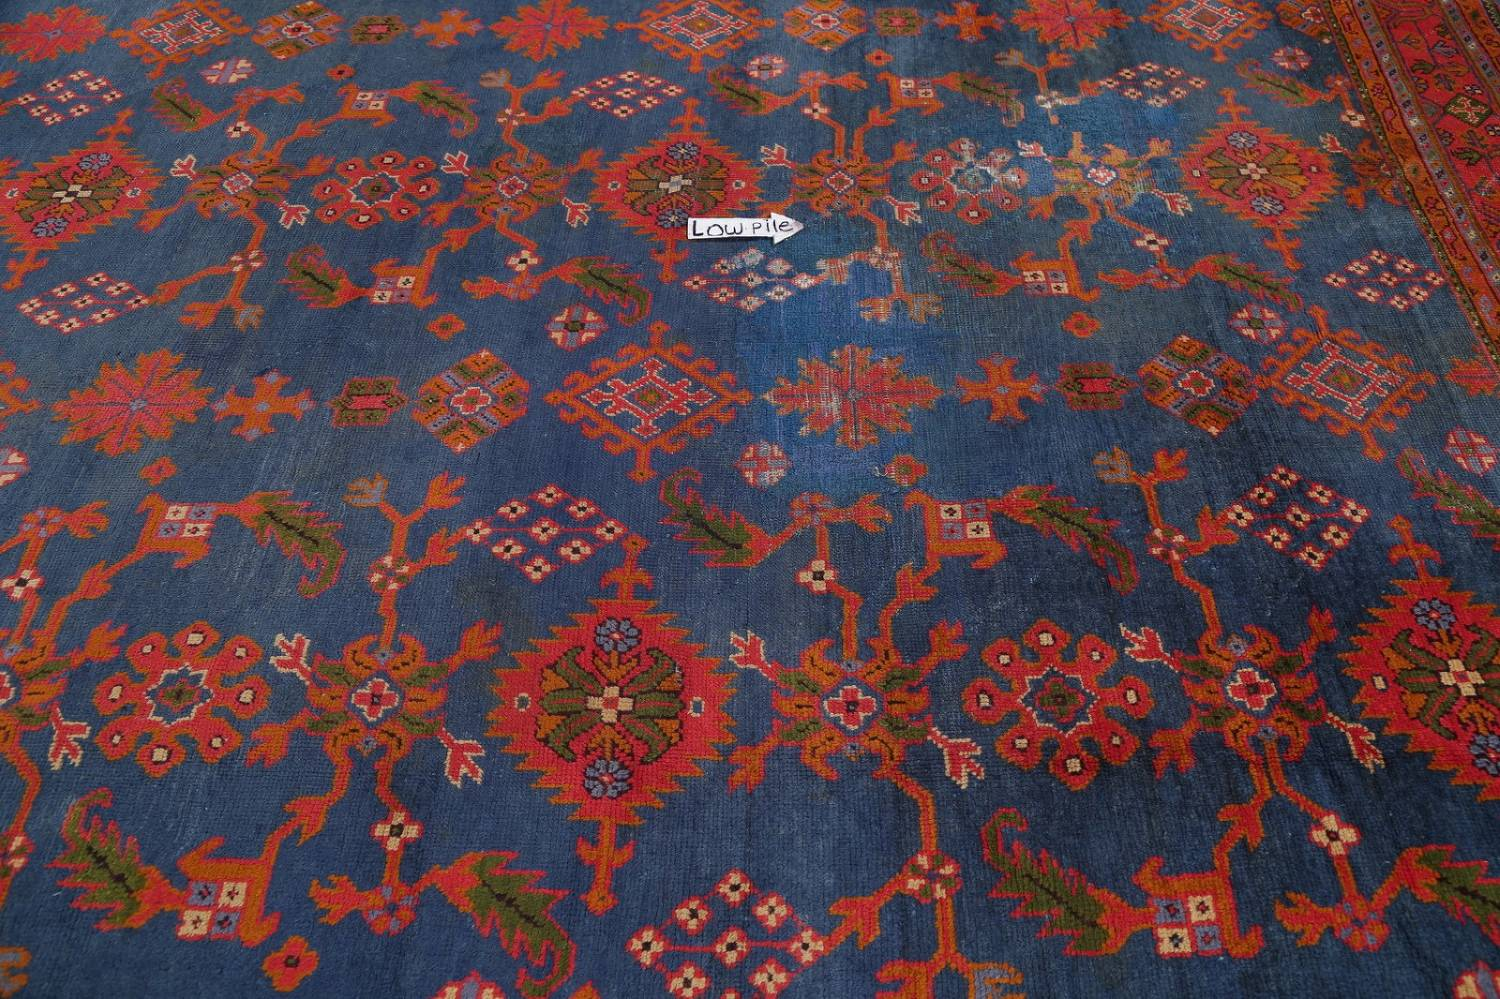 Antique Vegetable Dye Oushak Turkish Hand-Knotted Area Rug Wool 11x16 image 8